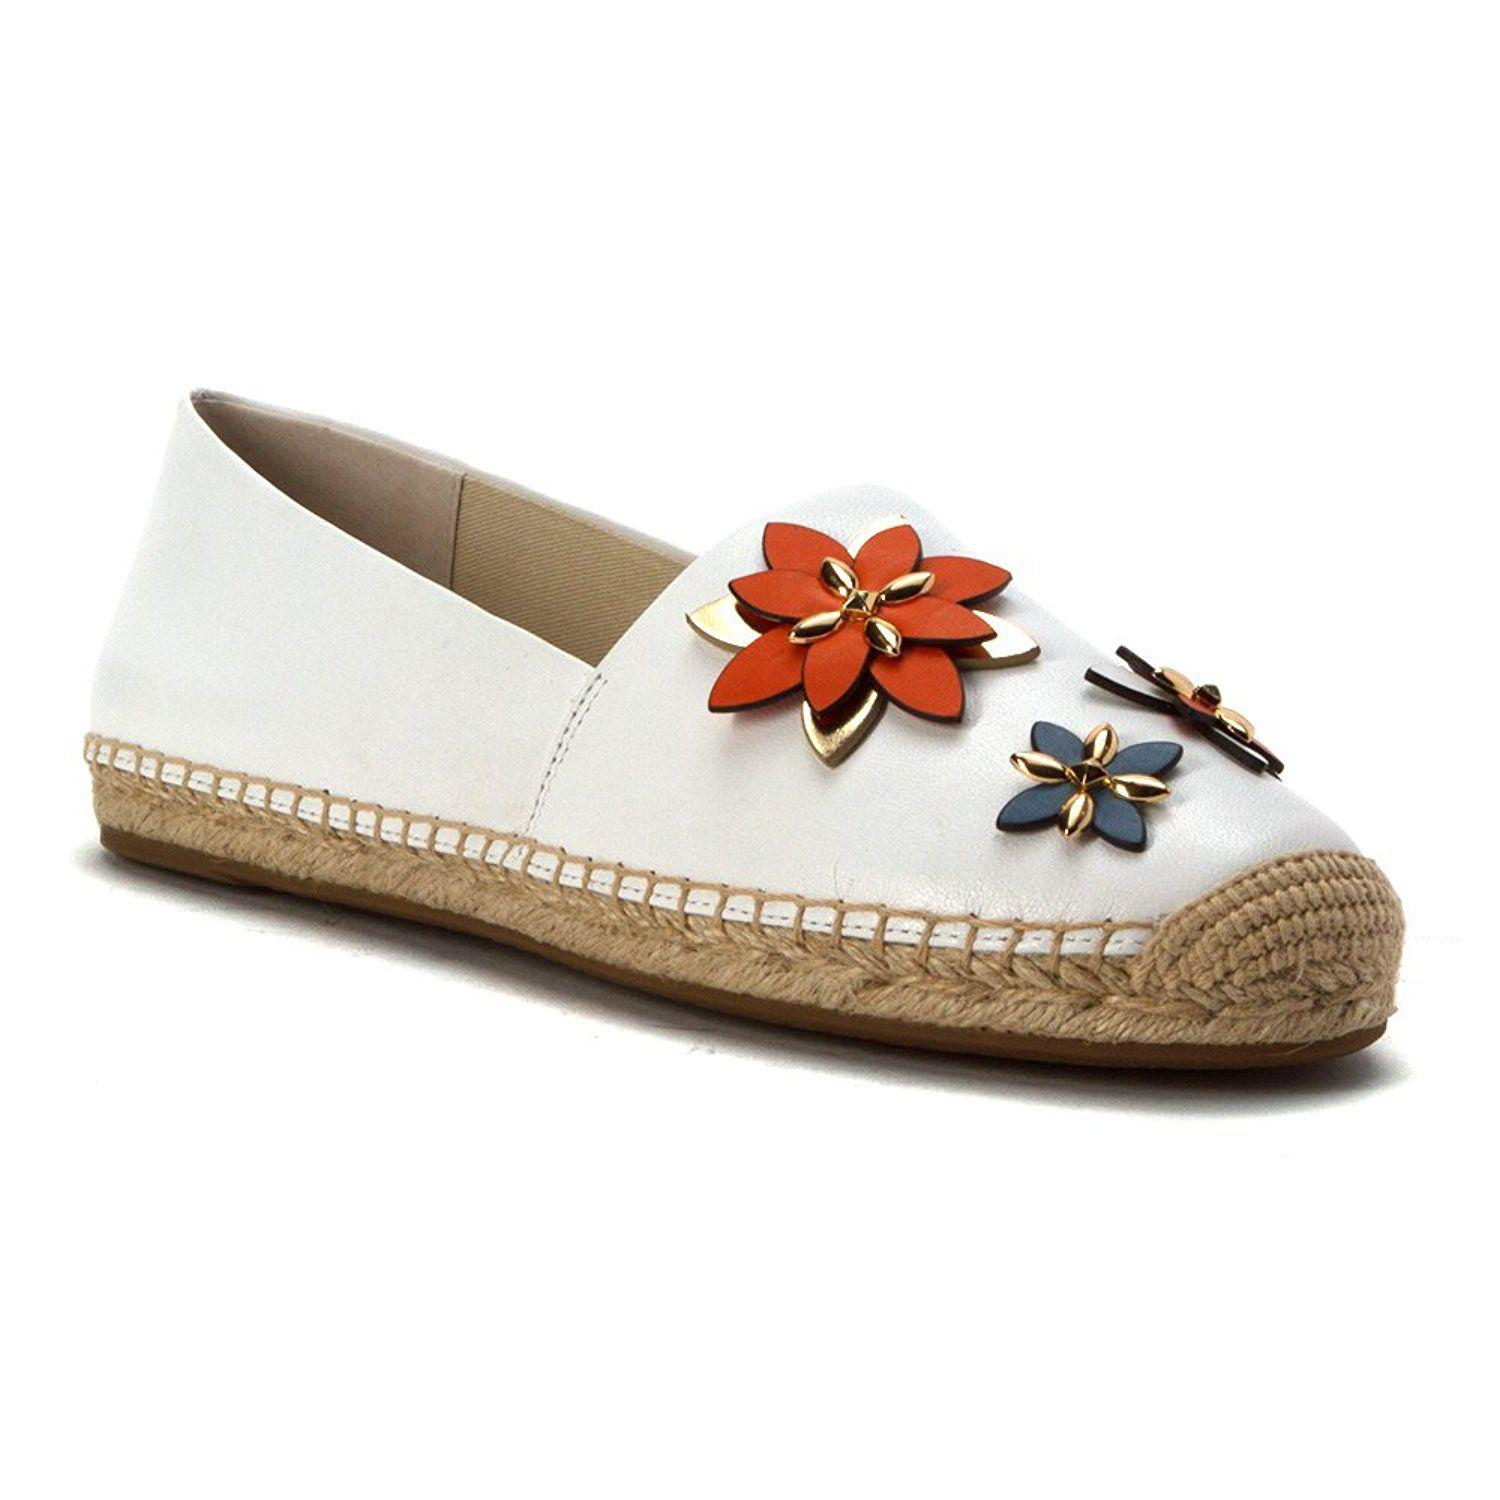 b3dad8aceac MICHAEL Michael Kors. White Womens Heidi Leather Closed Toe Espadrille Flats